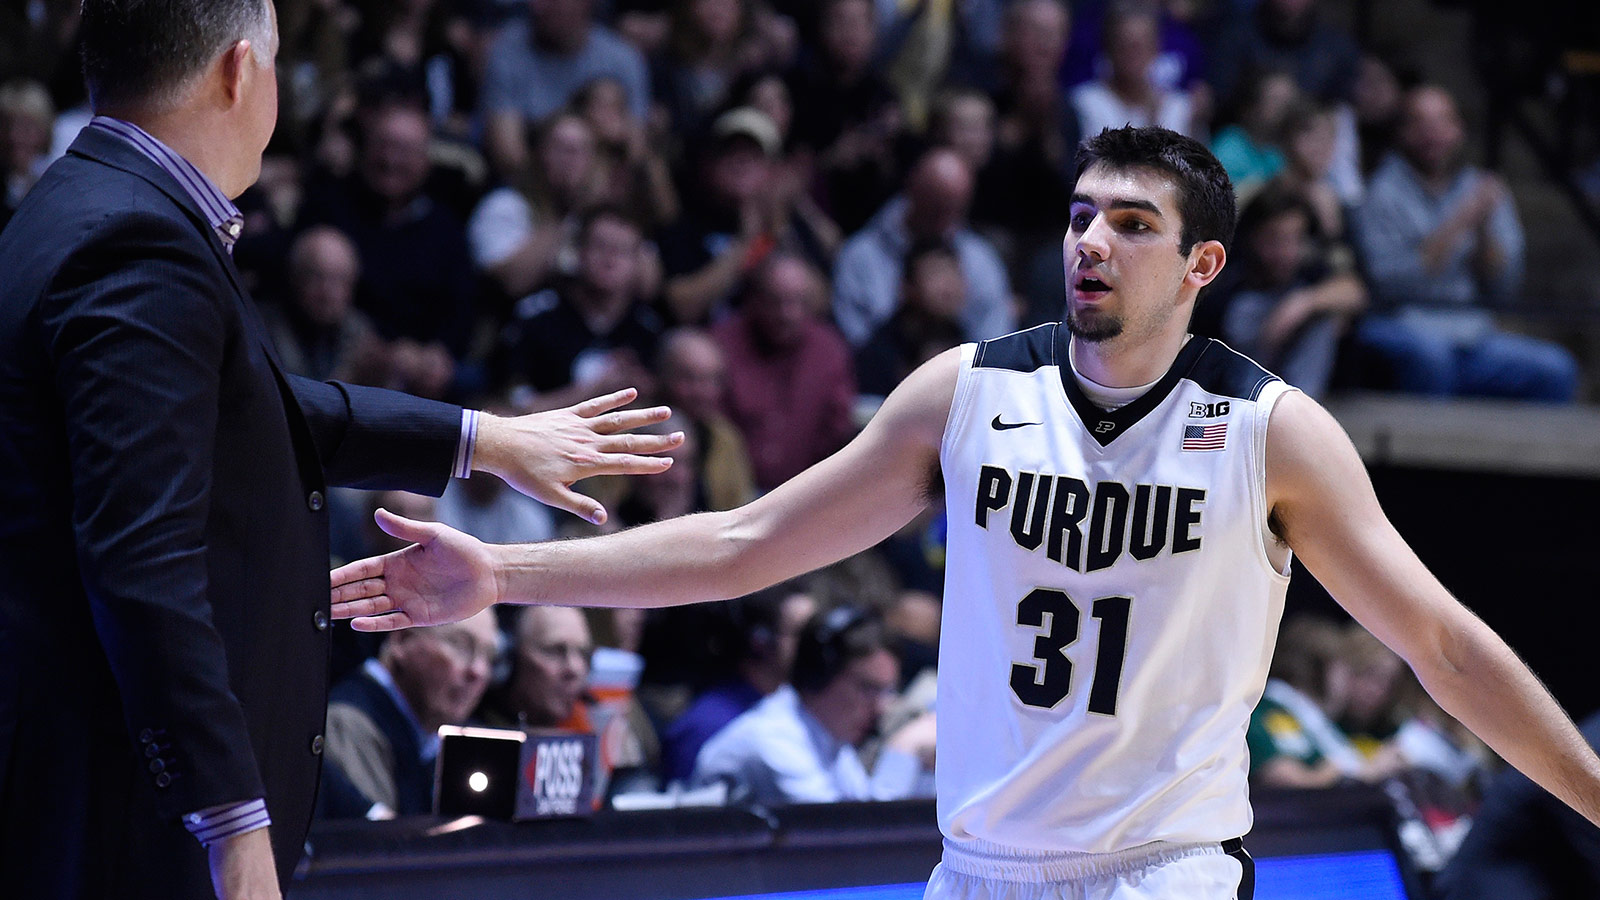 Purdue sinks school-record 18 3-pointers in 107-79 win over Vermont